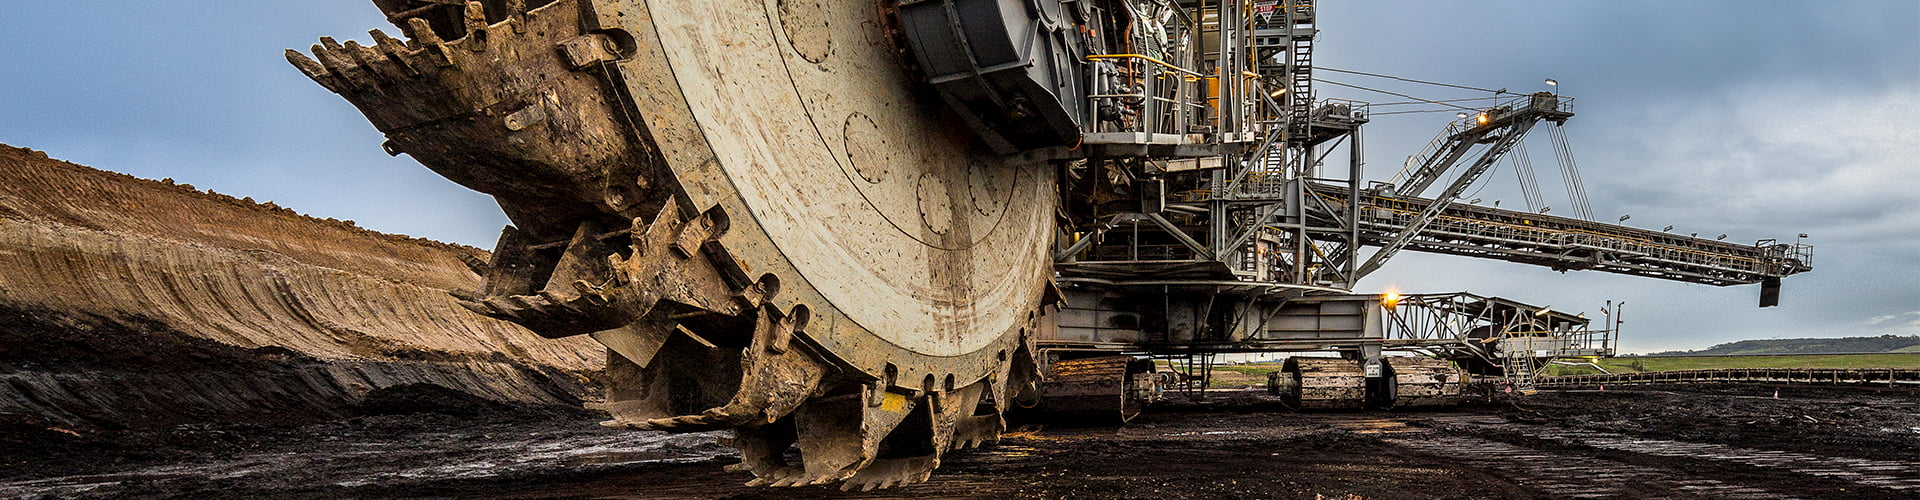 Bucket wheel excavator at an open cut coal mine